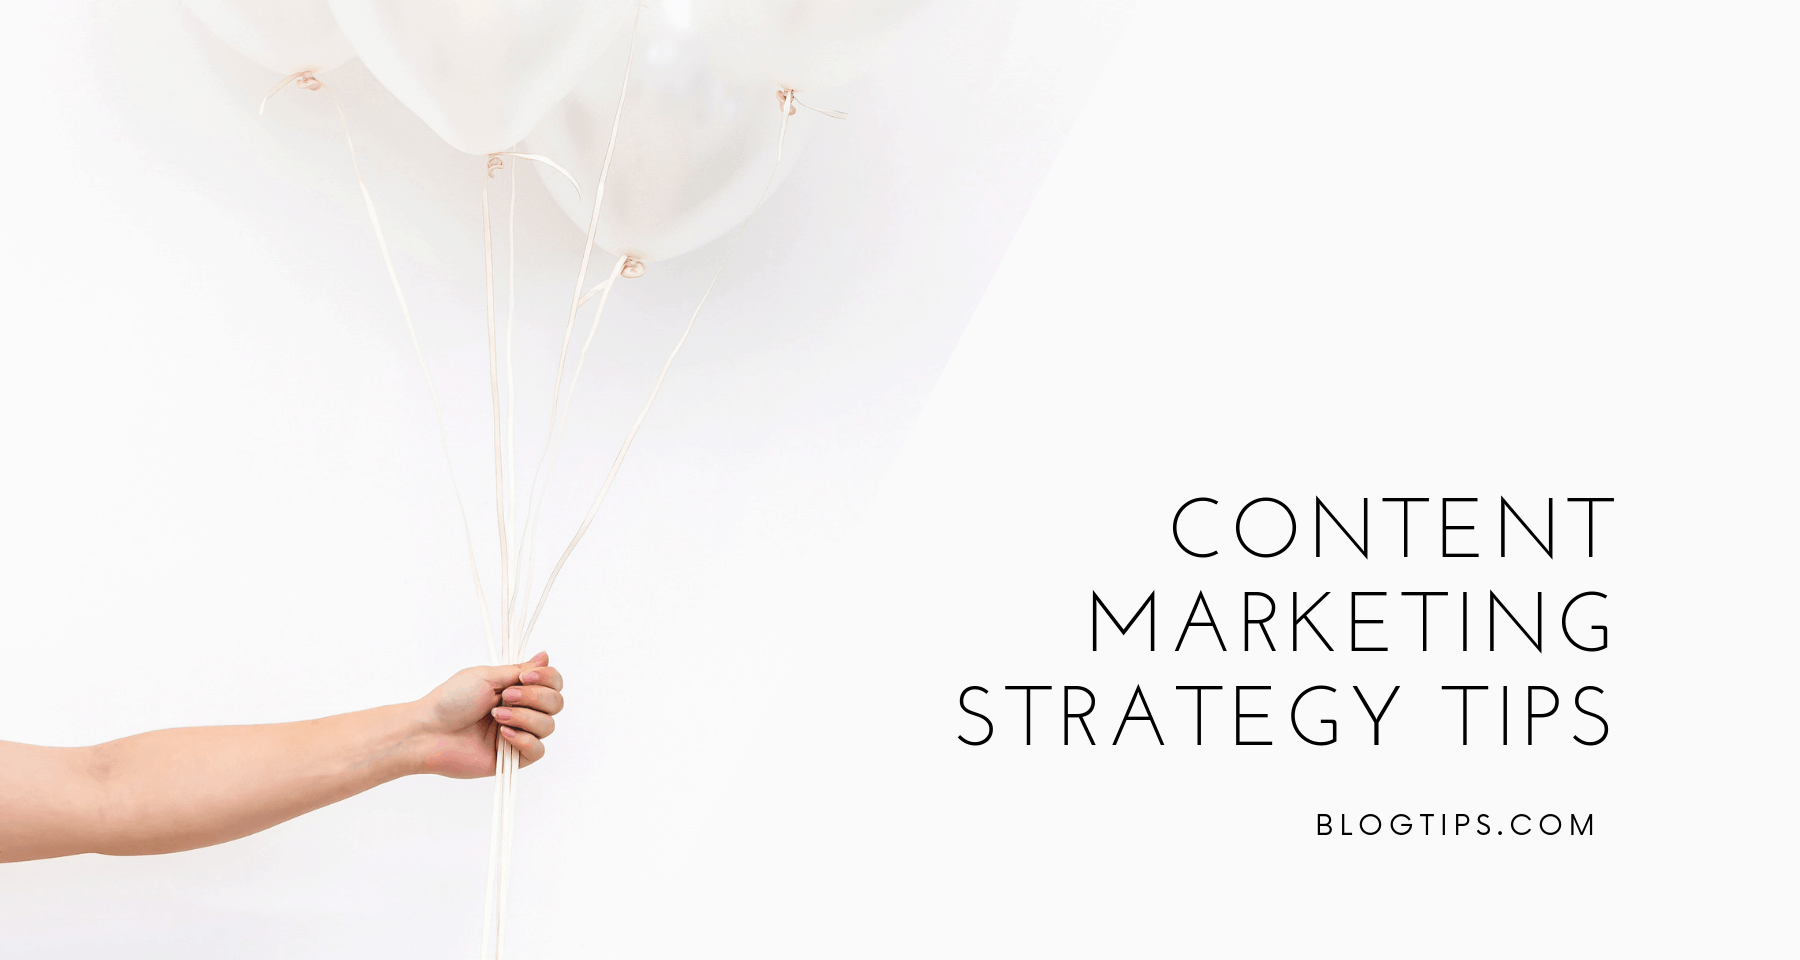 10 Amazing Content Marketing Strategy Tips To Grow Your Blog